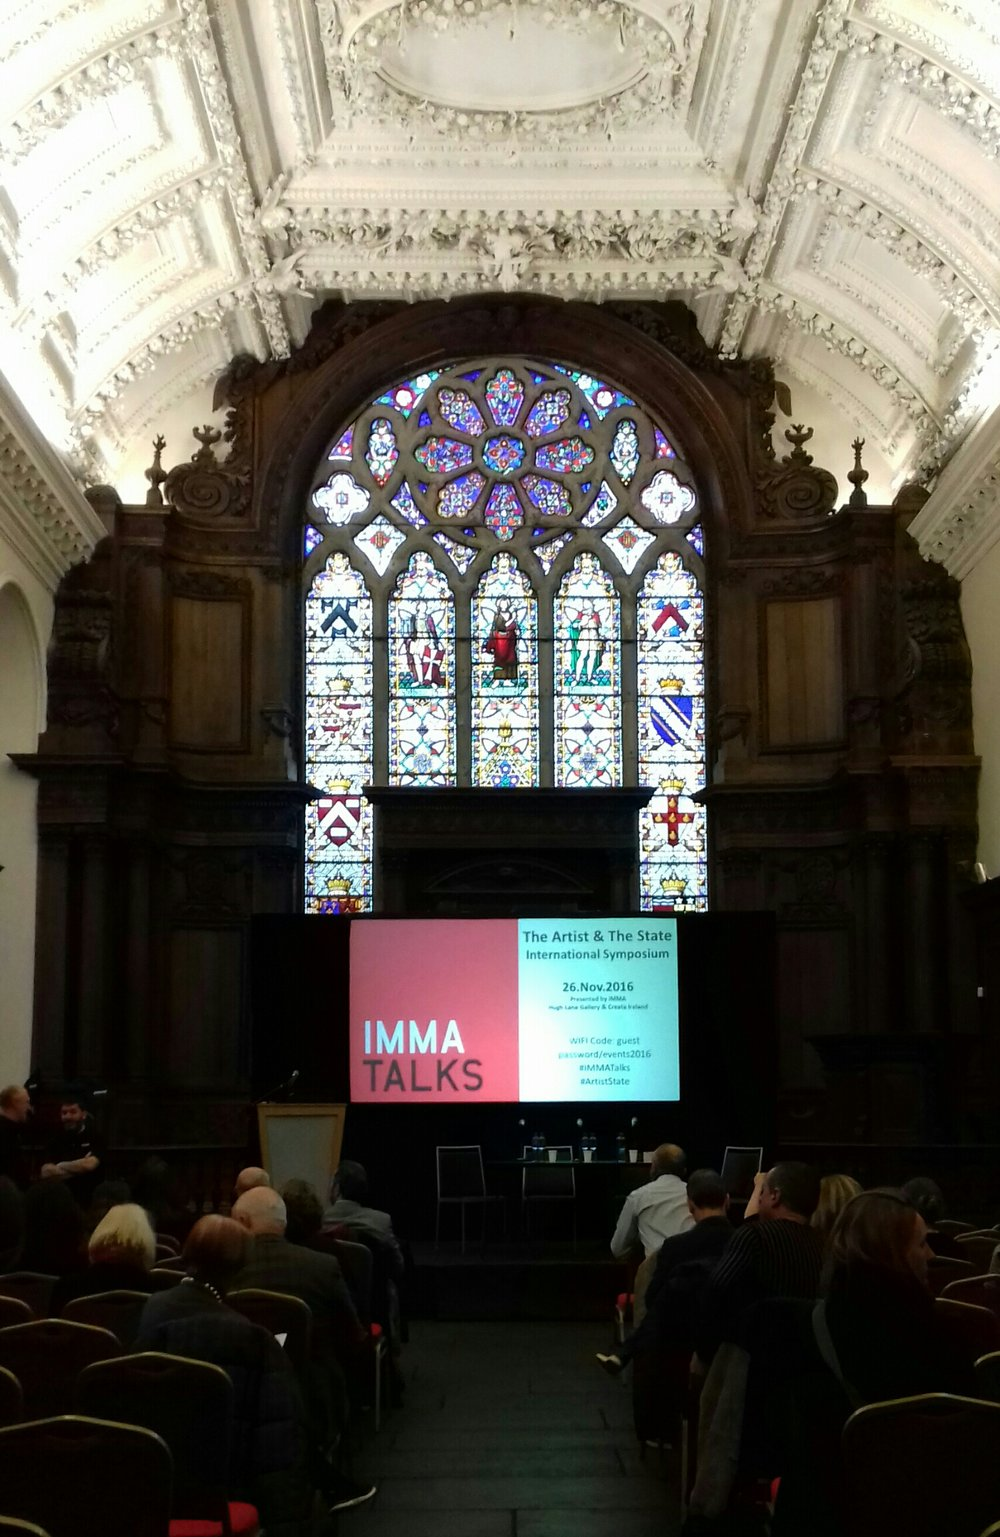 The stunning chapel room inside the Irish Museum of Modern Art at the Artist and the State Symposium